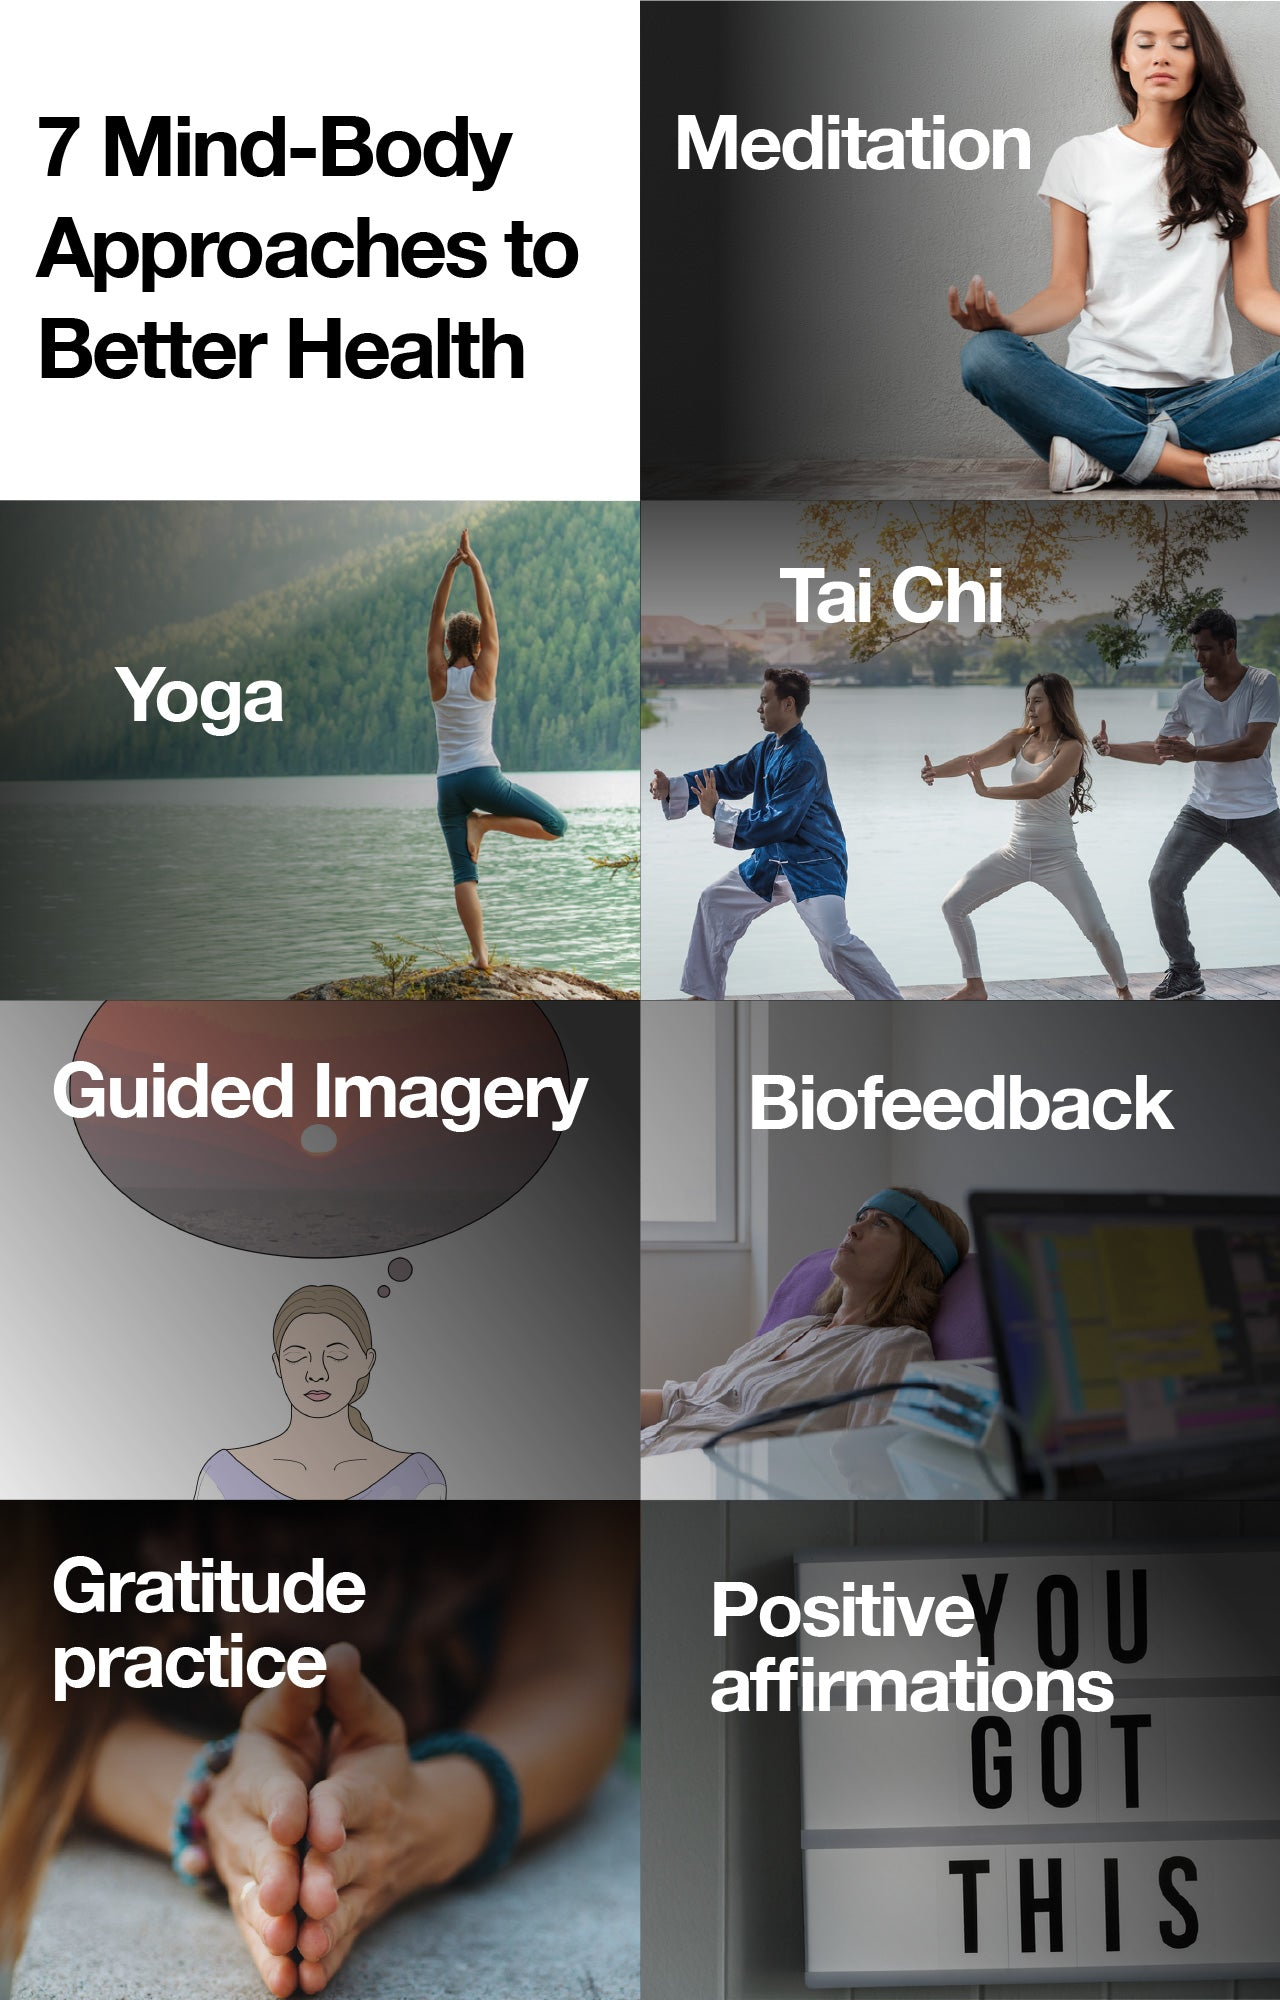 Mind-body approaches to better health